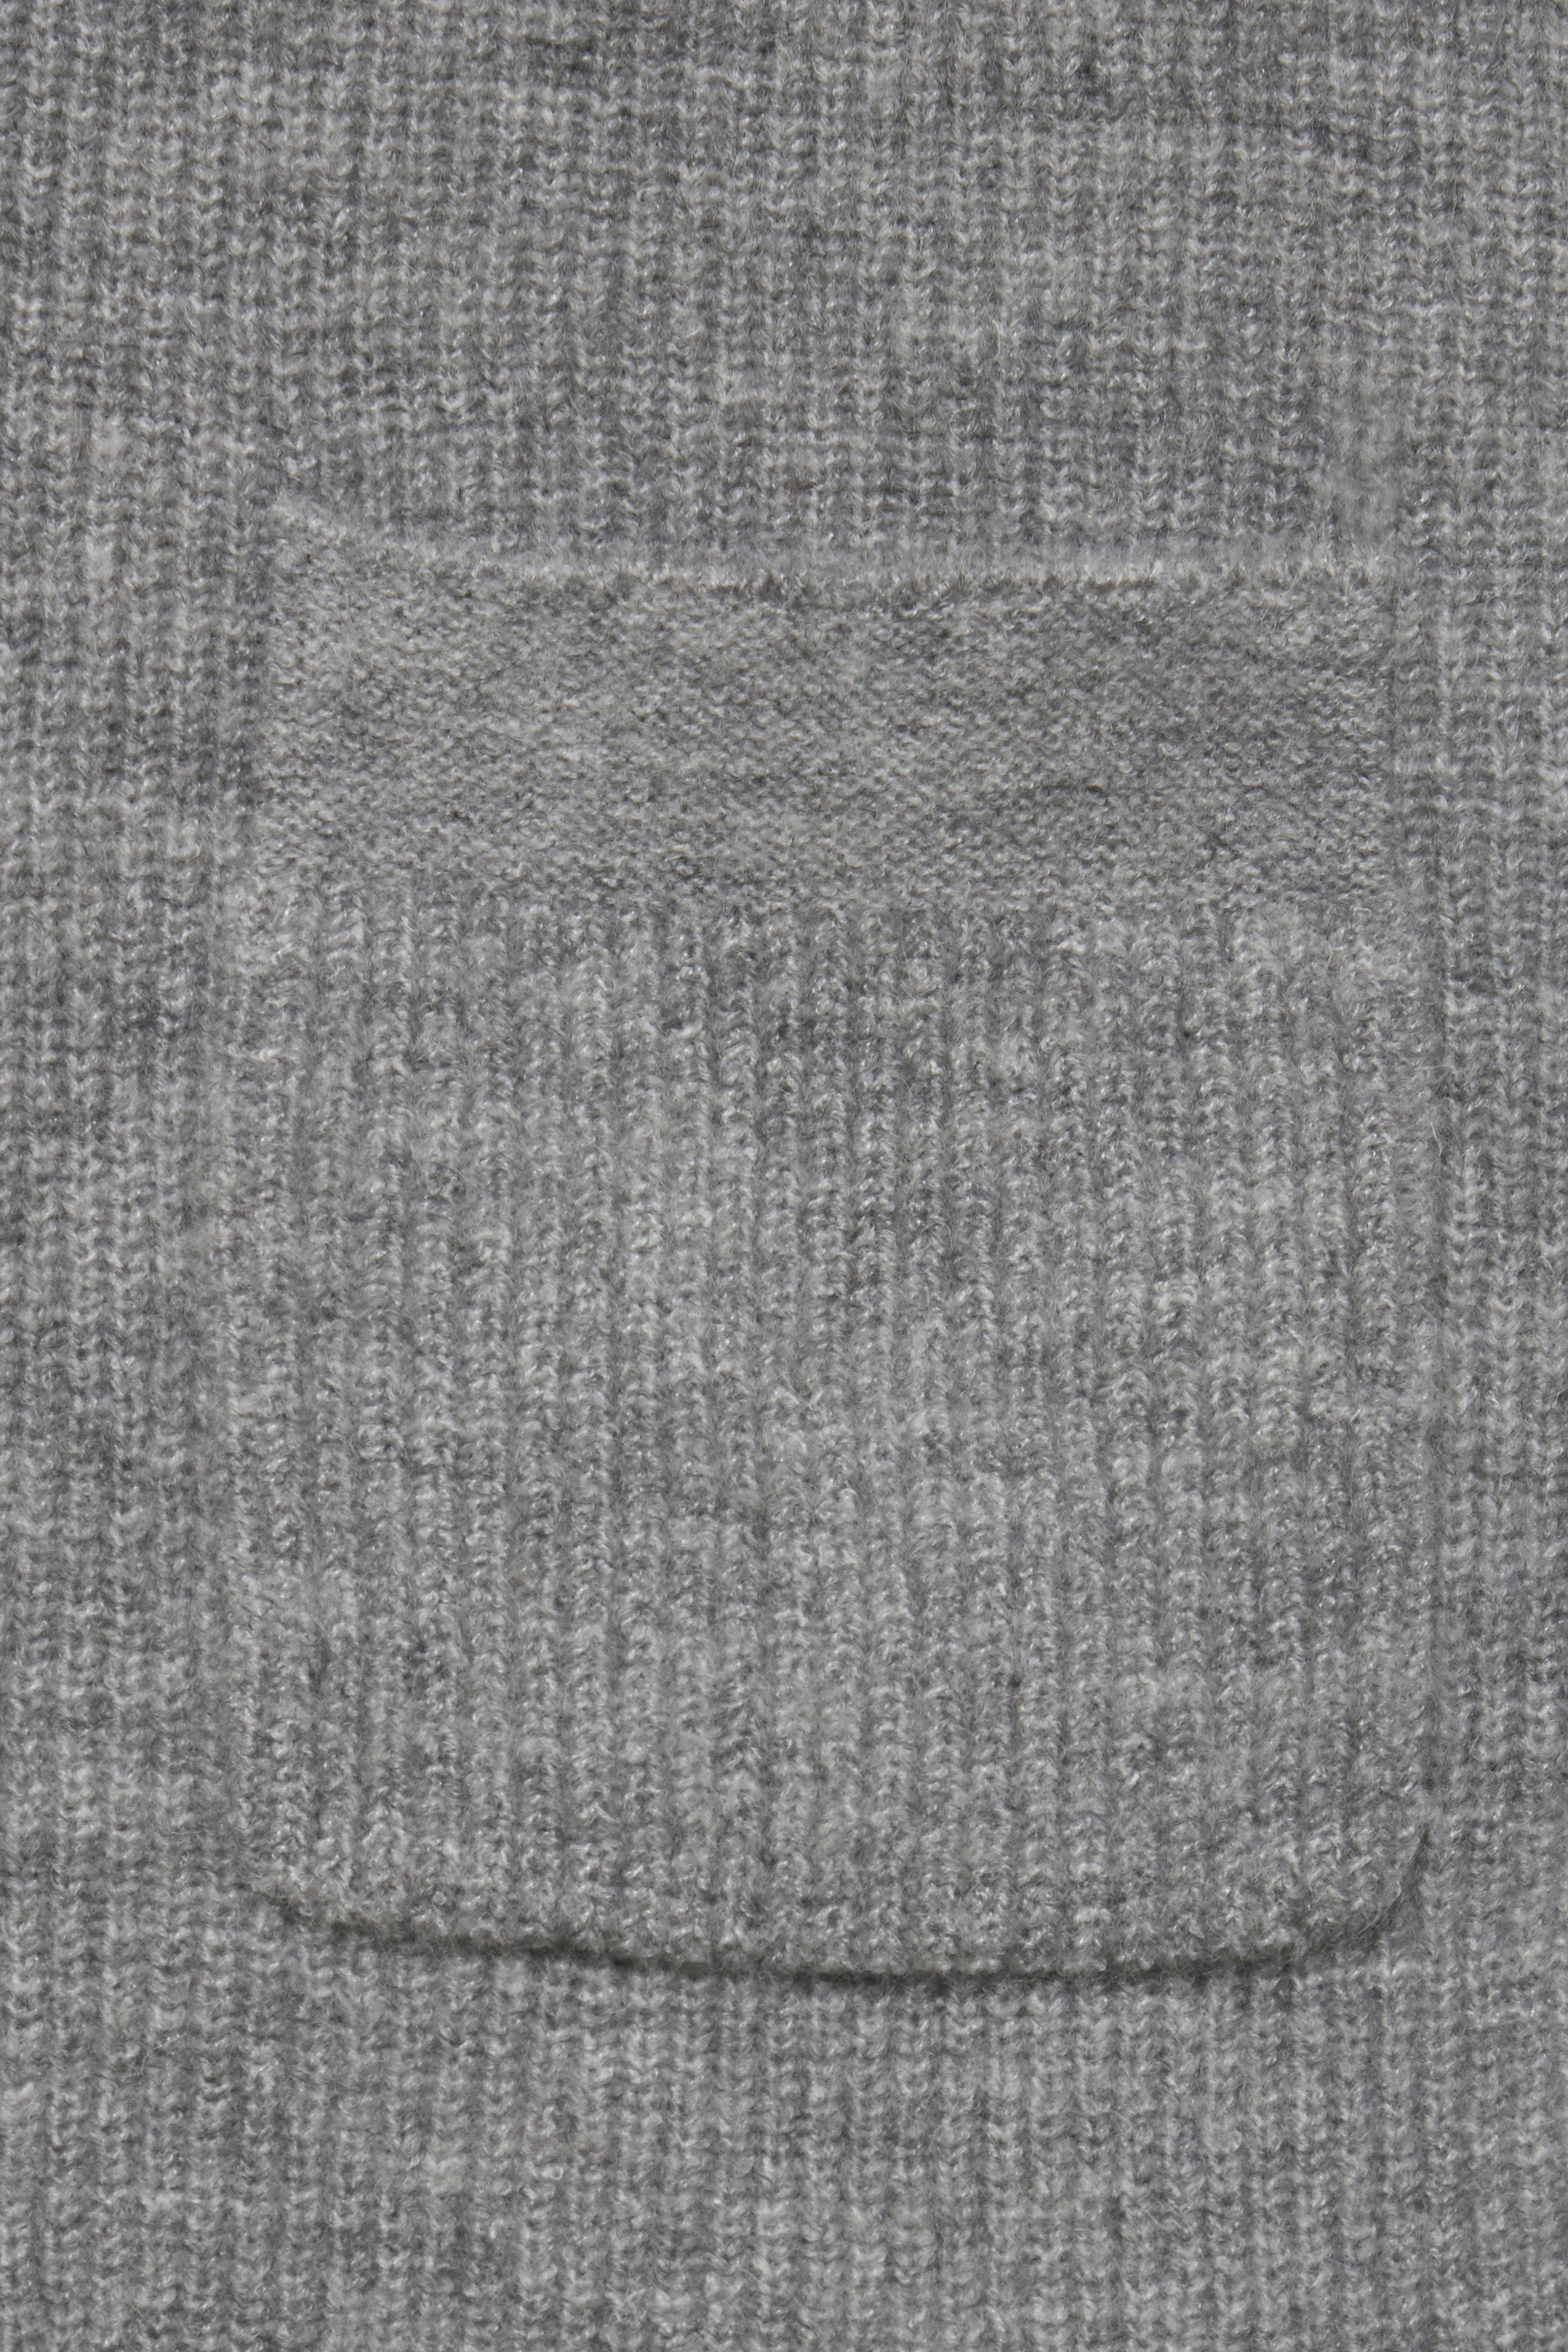 Med. Grey Mel. Knitted cardigan from b.young – Buy Med. Grey Mel. Knitted cardigan from size XS-XXL here